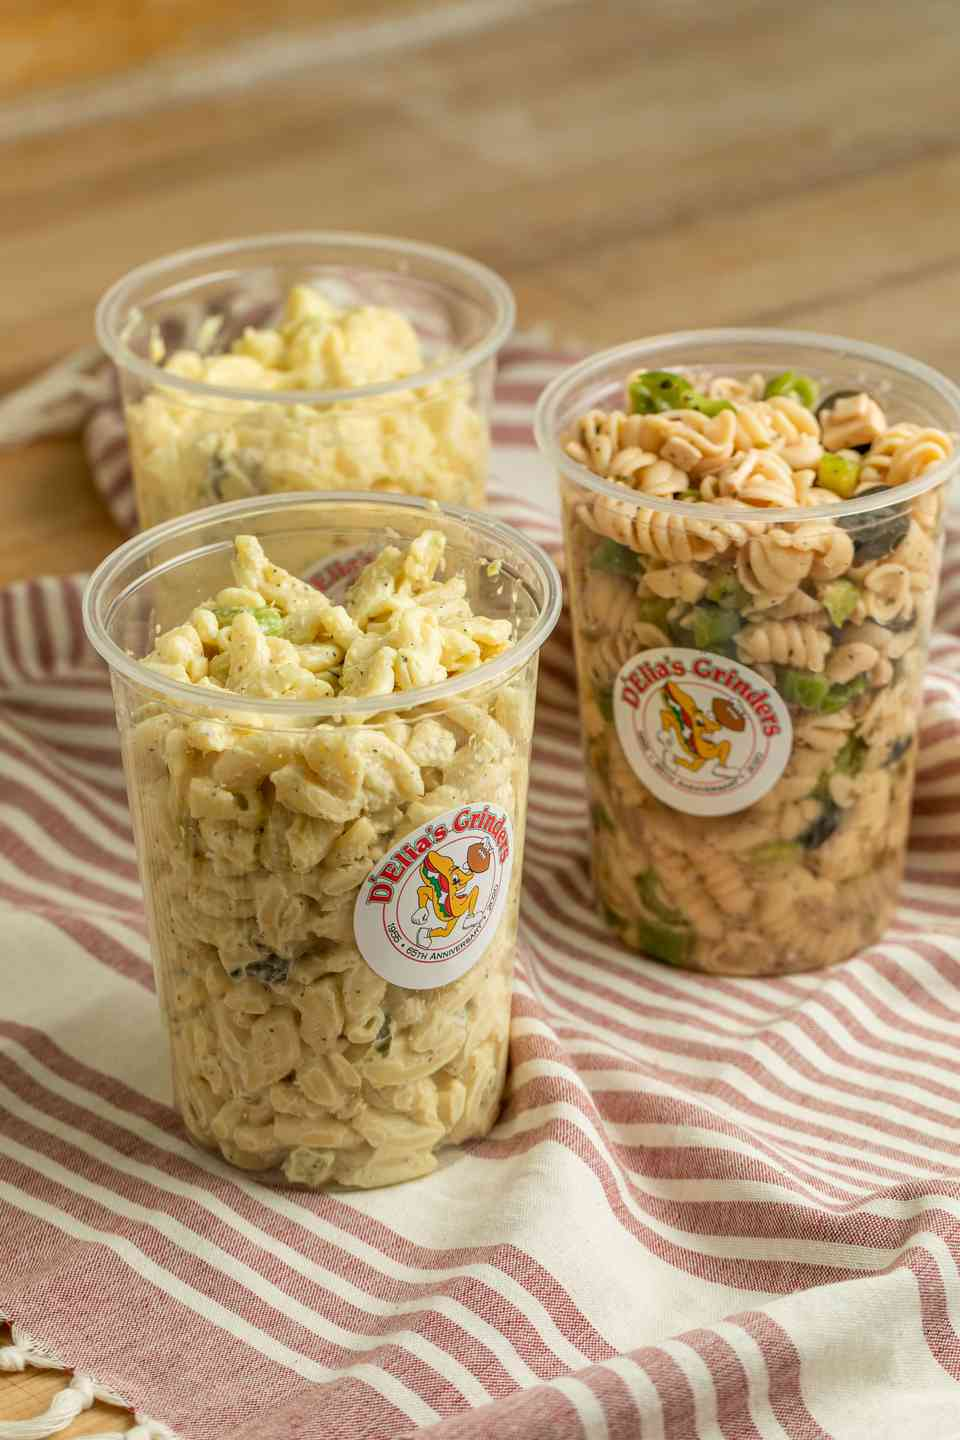 2lb. Bulk Salads - May be ordered same day if available.